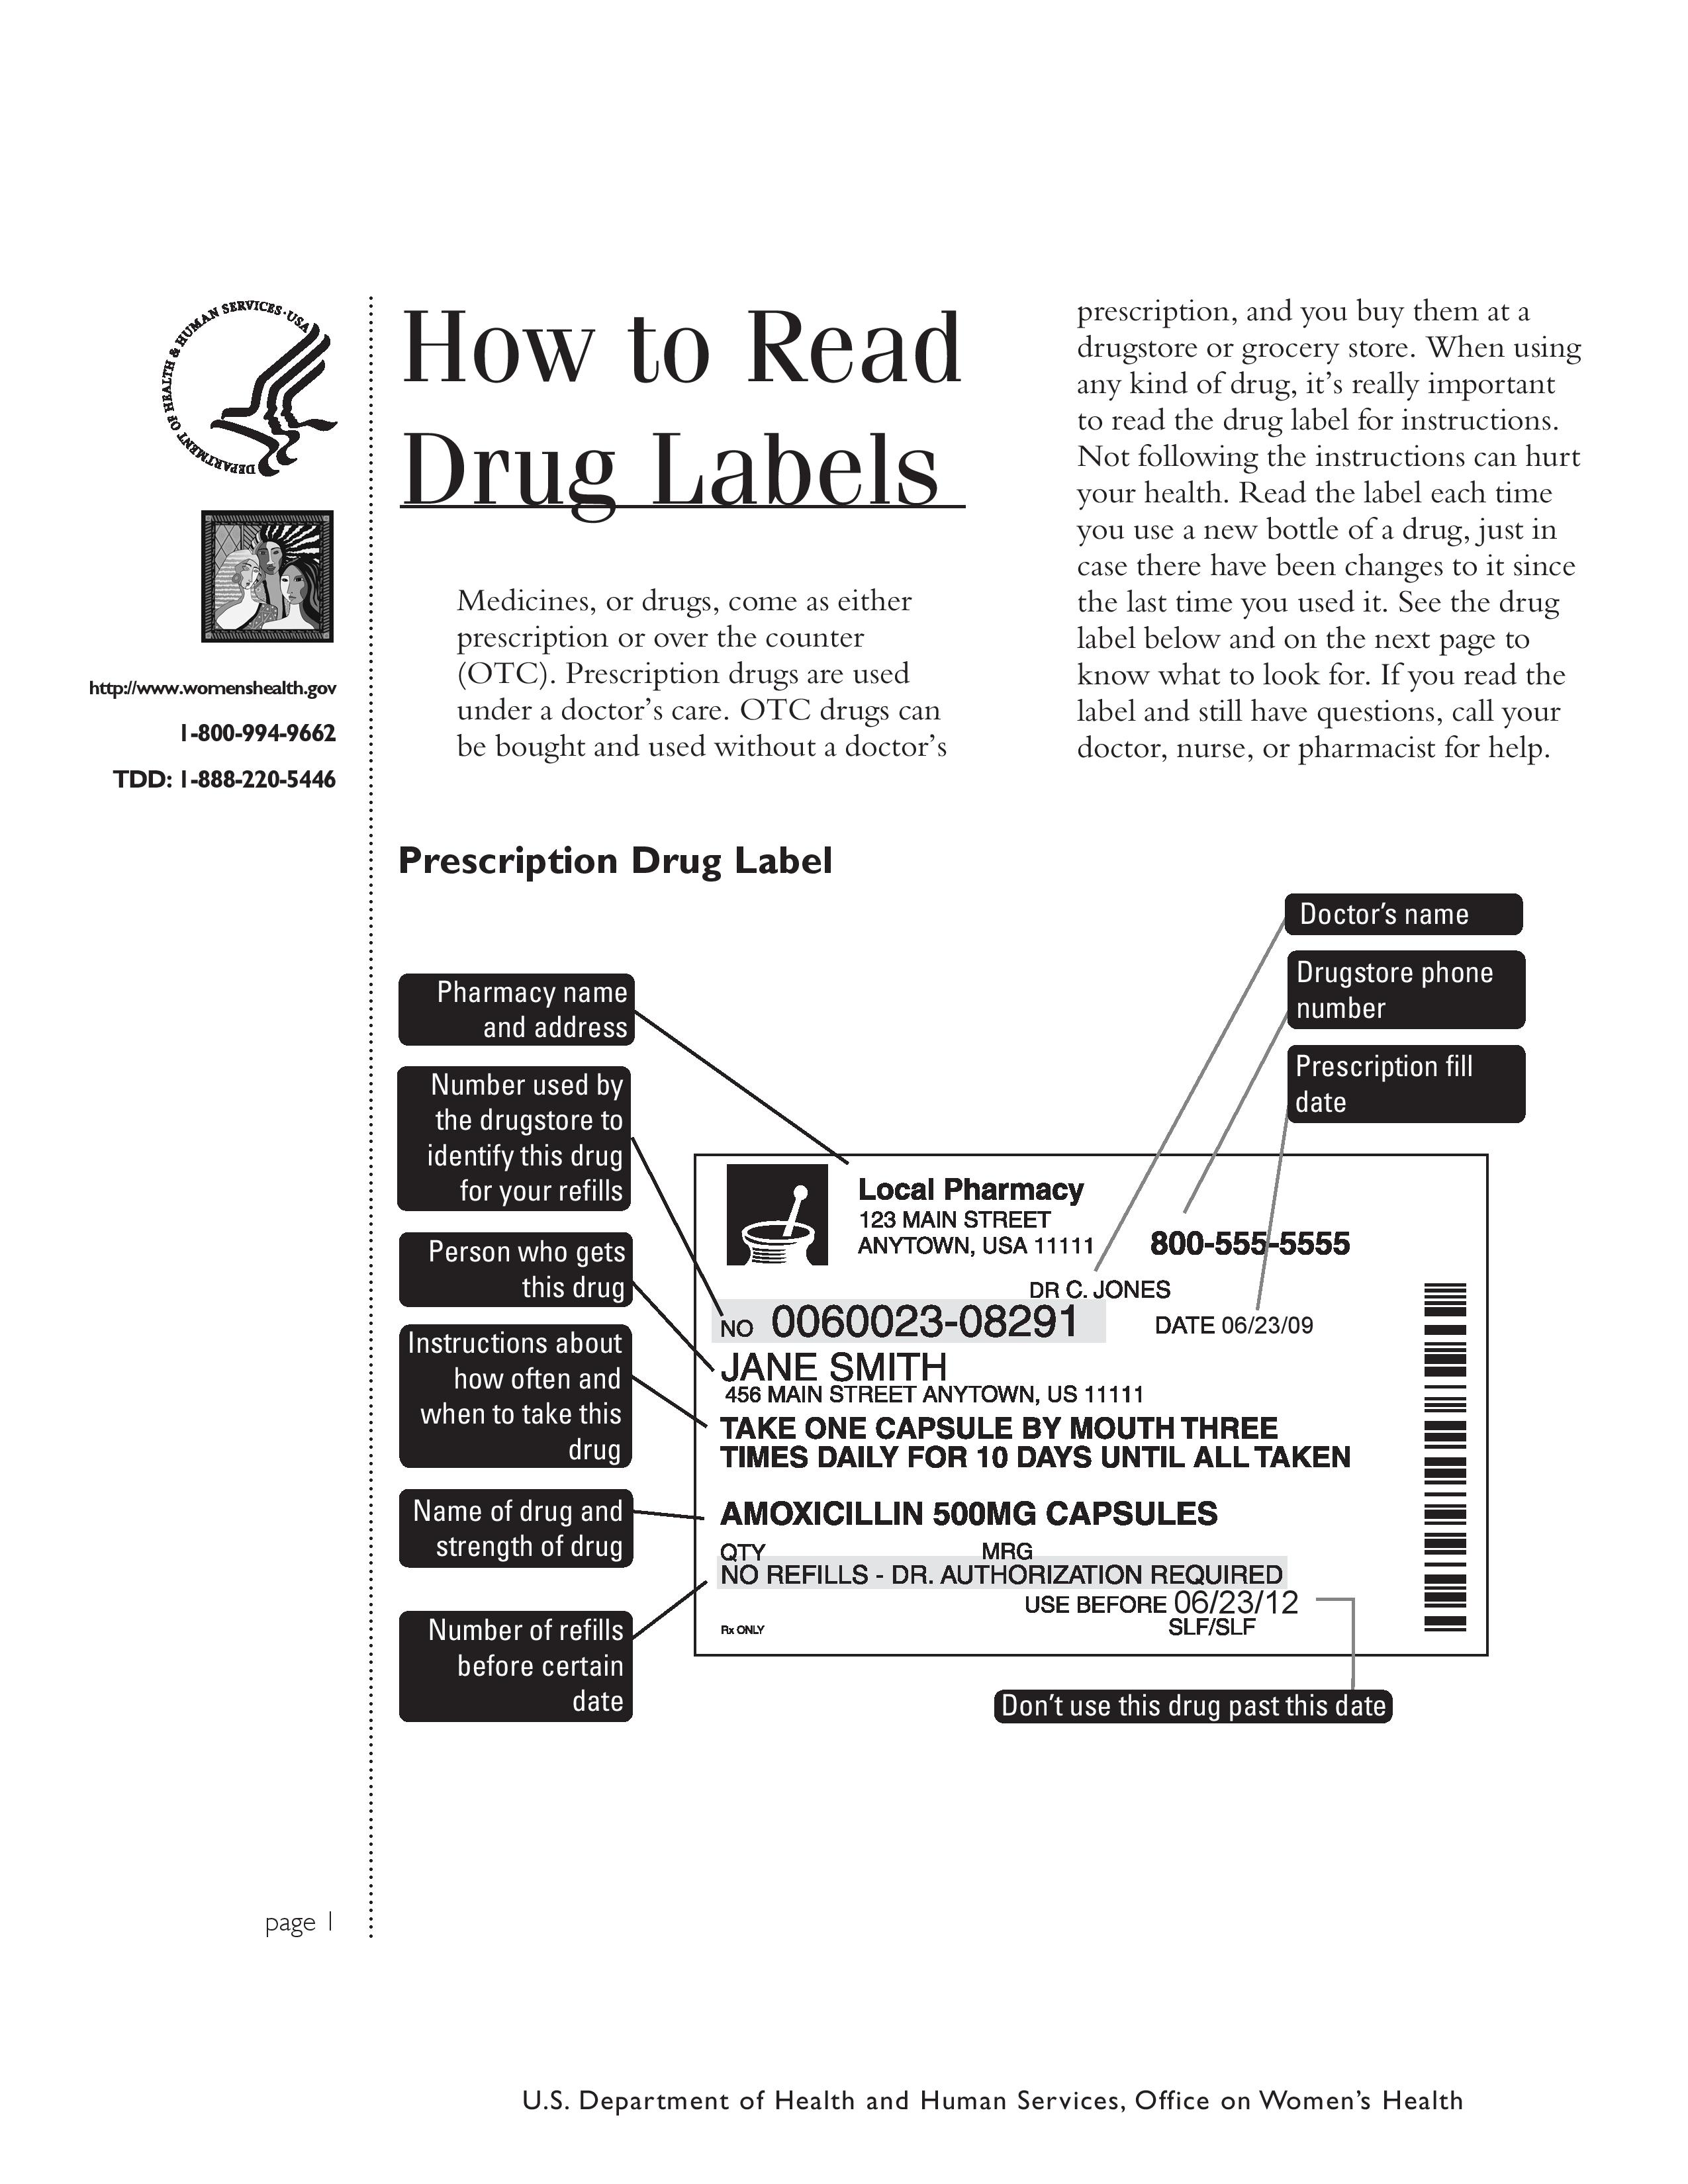 How To Read Drug Labels